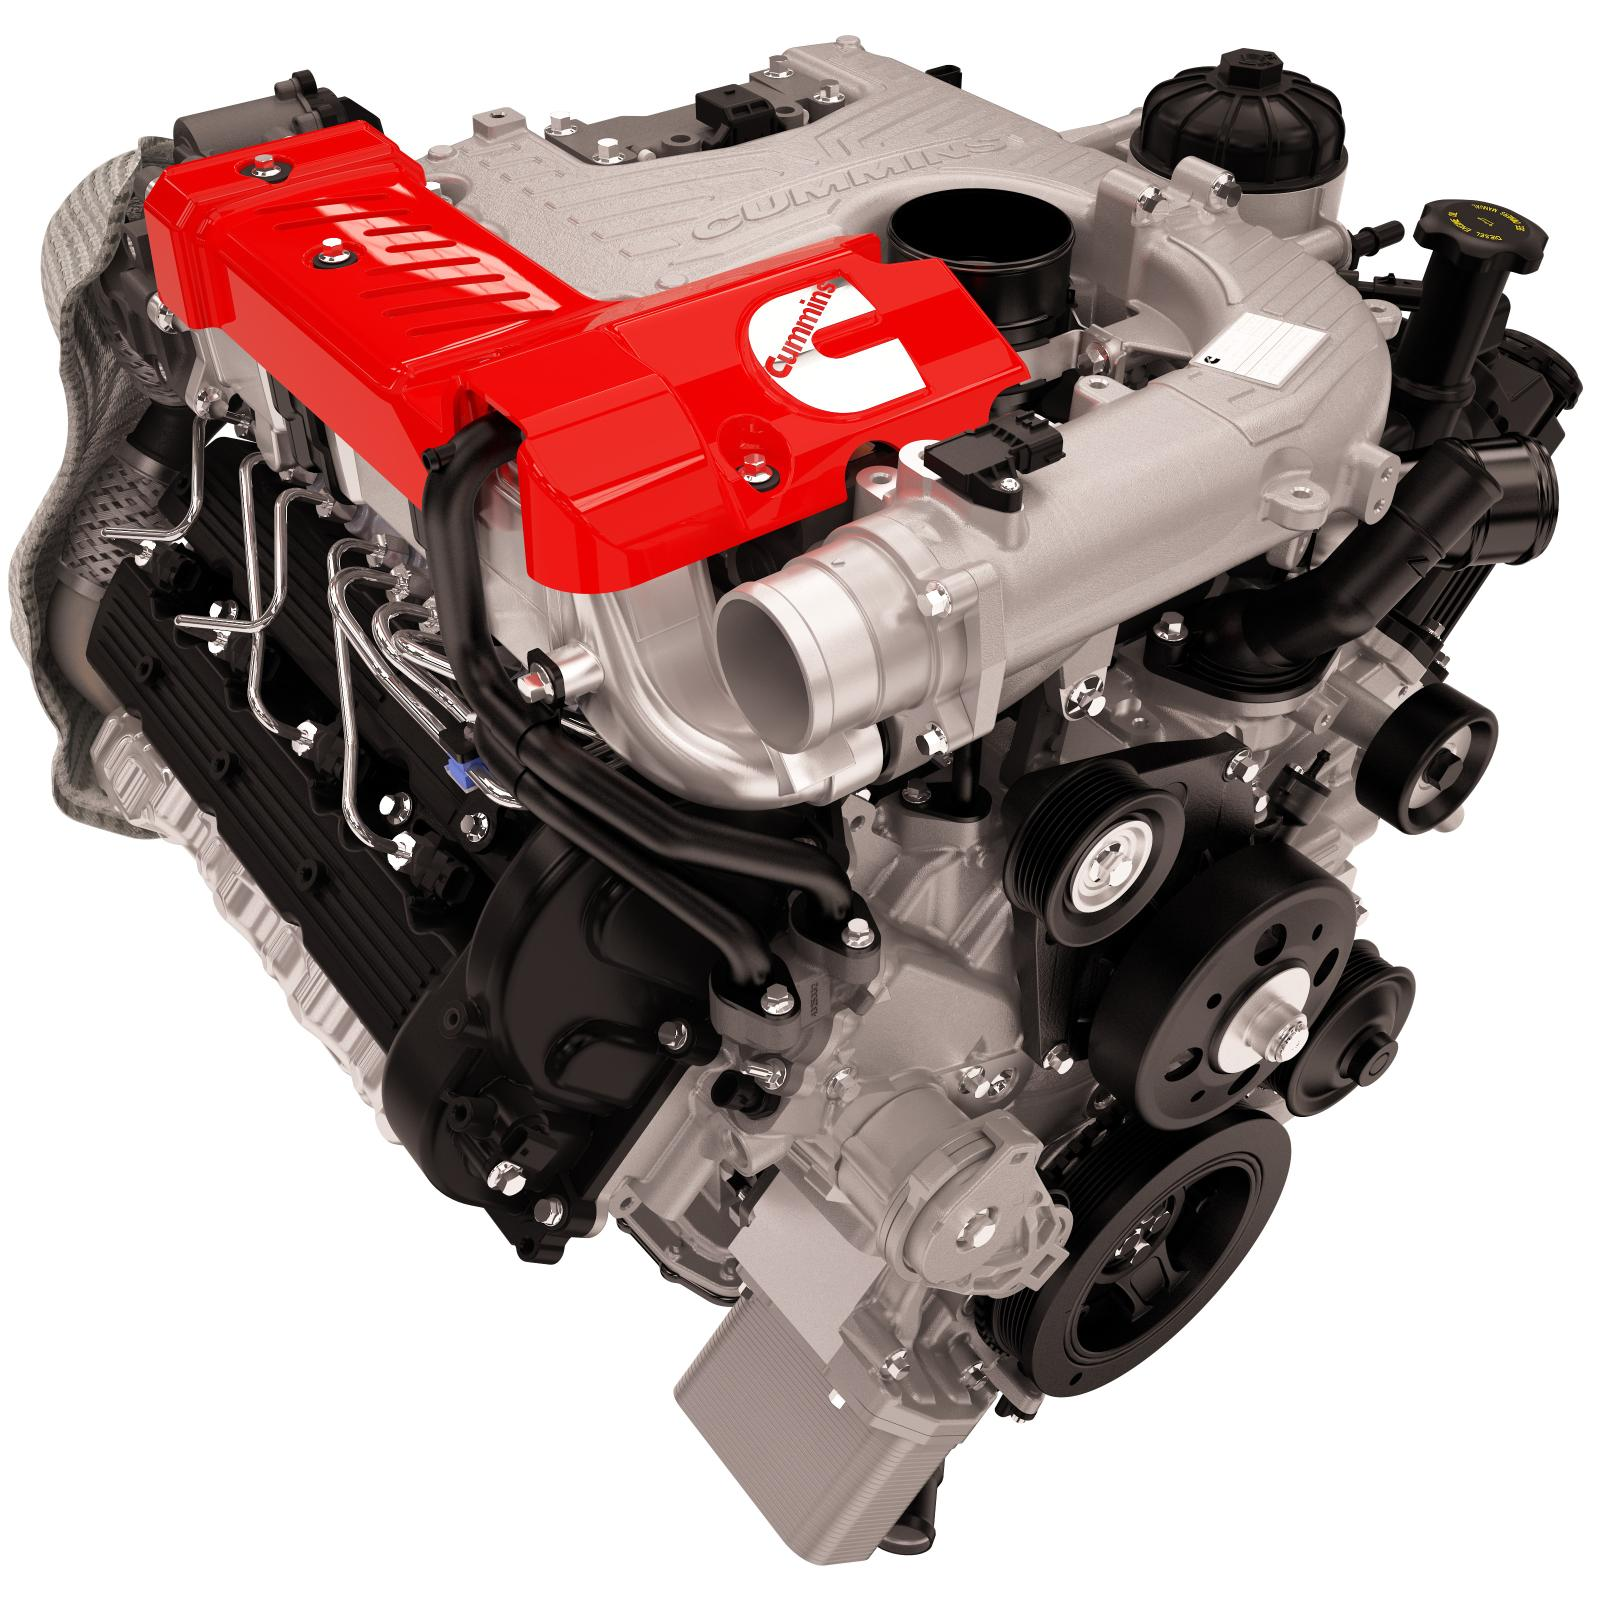 Cummins Diesel Engine Of Nissan Titan Xd Is A Beautiful Technological Showcase Video Photo Gallery